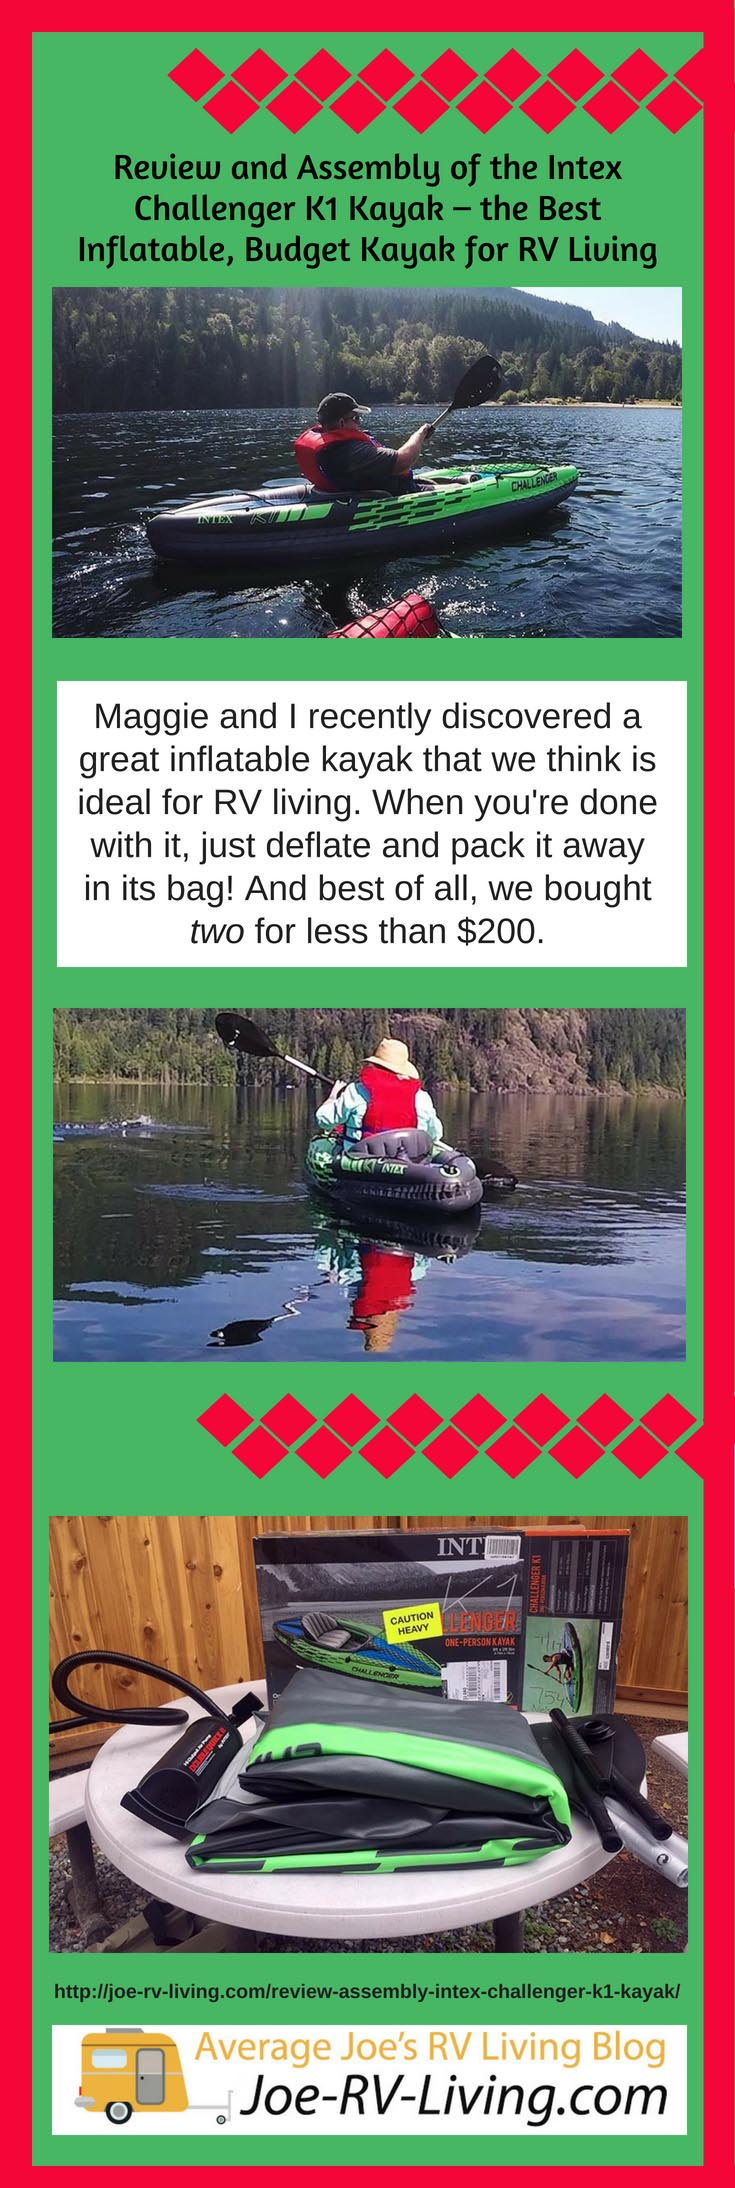 Review and Assembly of the Intex Challenger K1 Kayak – the Best Lightweight, Budget Kayak for RV Living